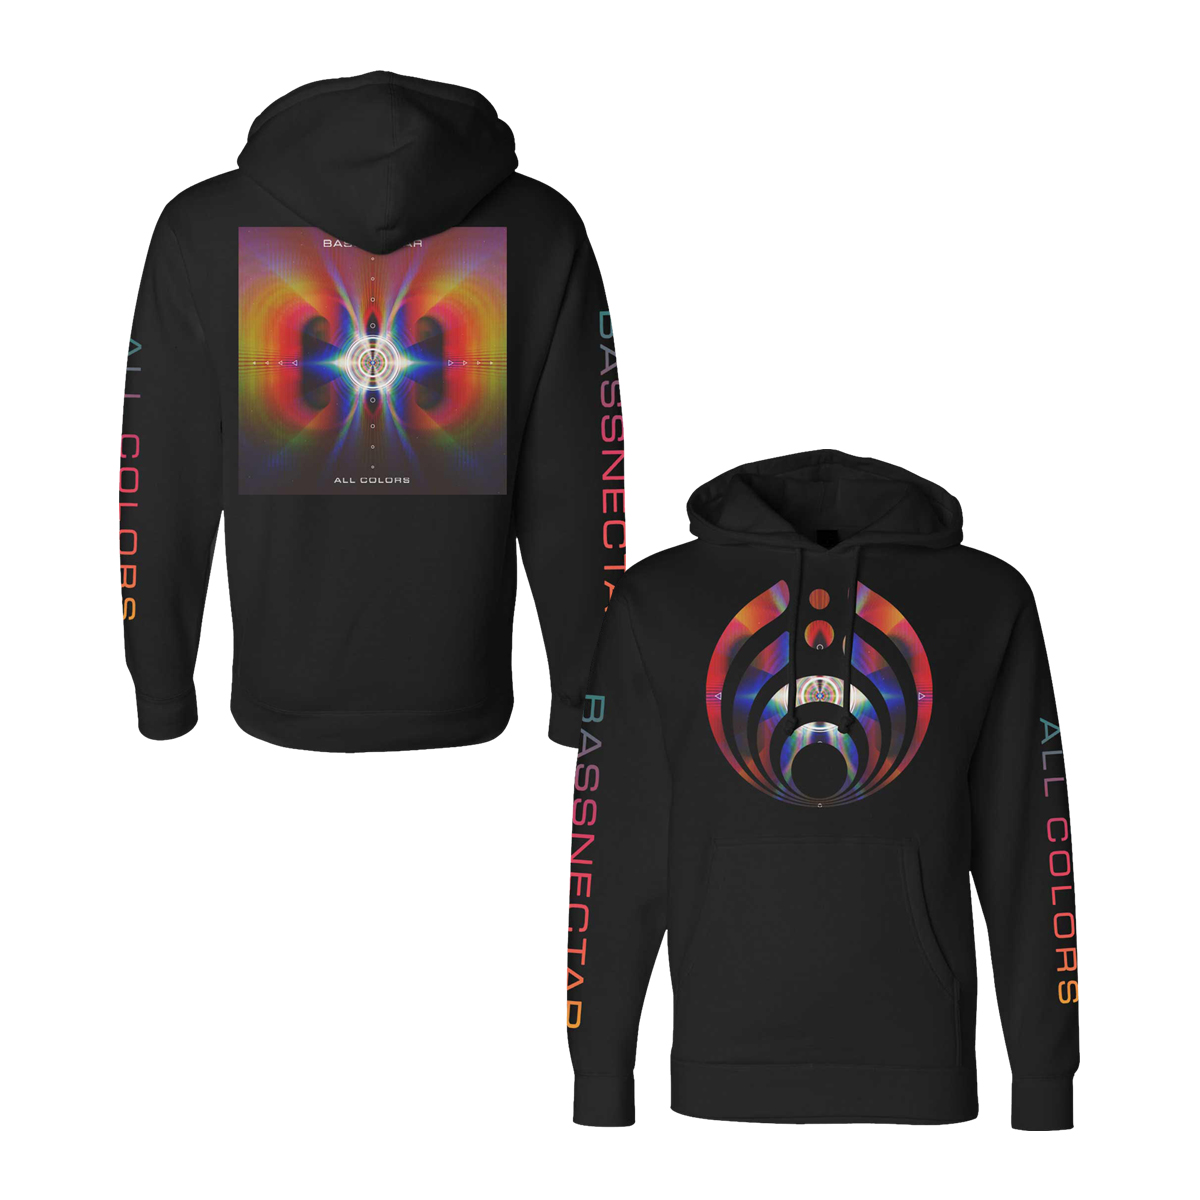 All Colors Deluxe Black Hoodie Bundle